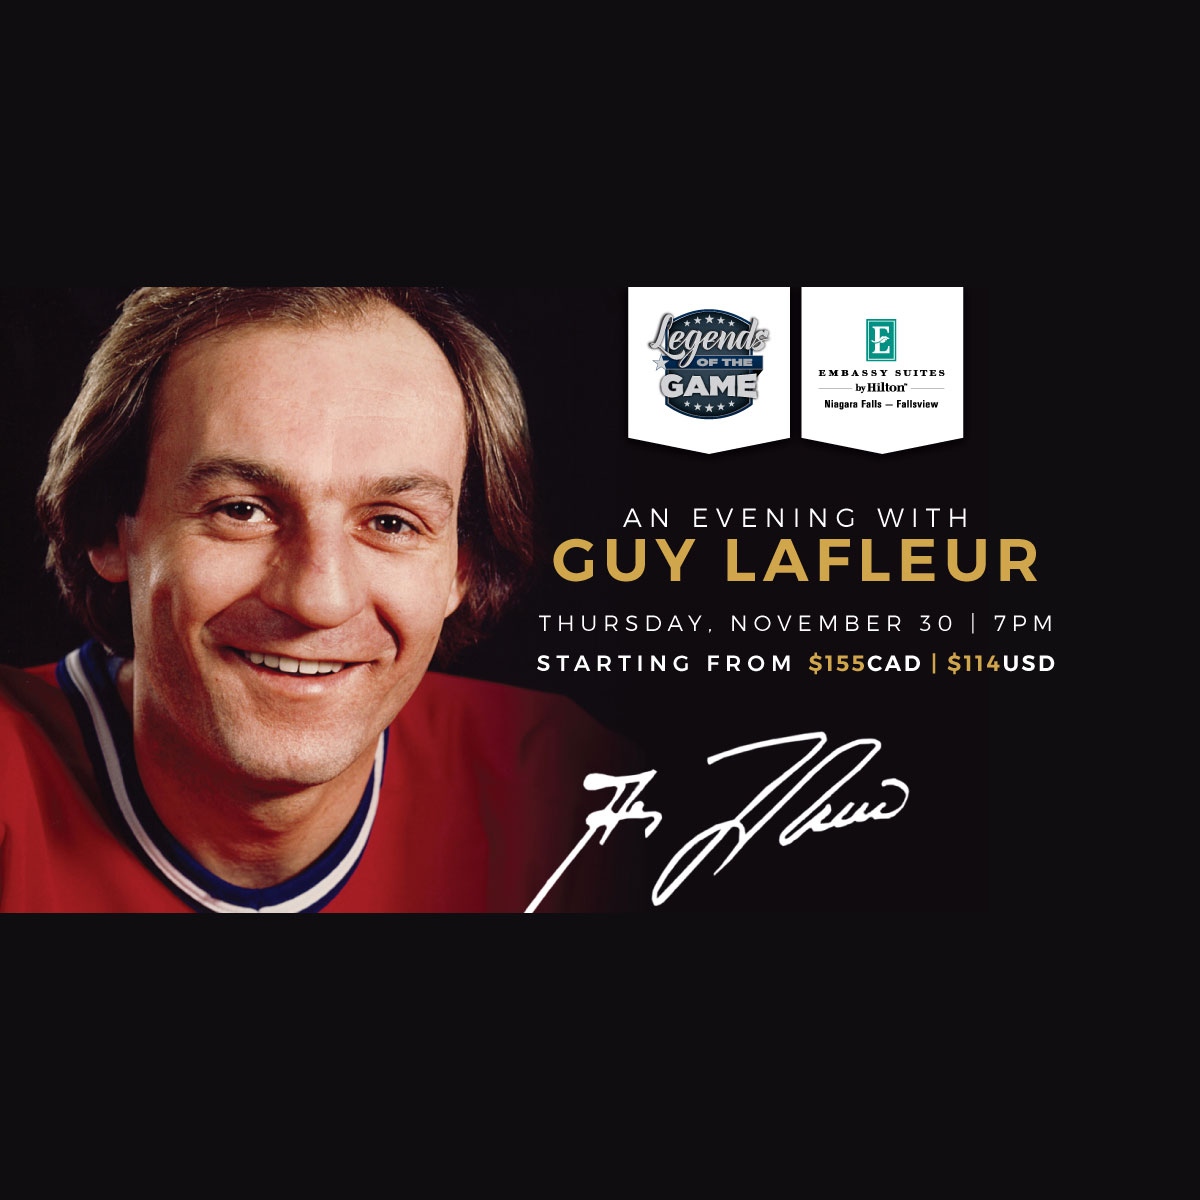 An Evening with Guy Lafleur